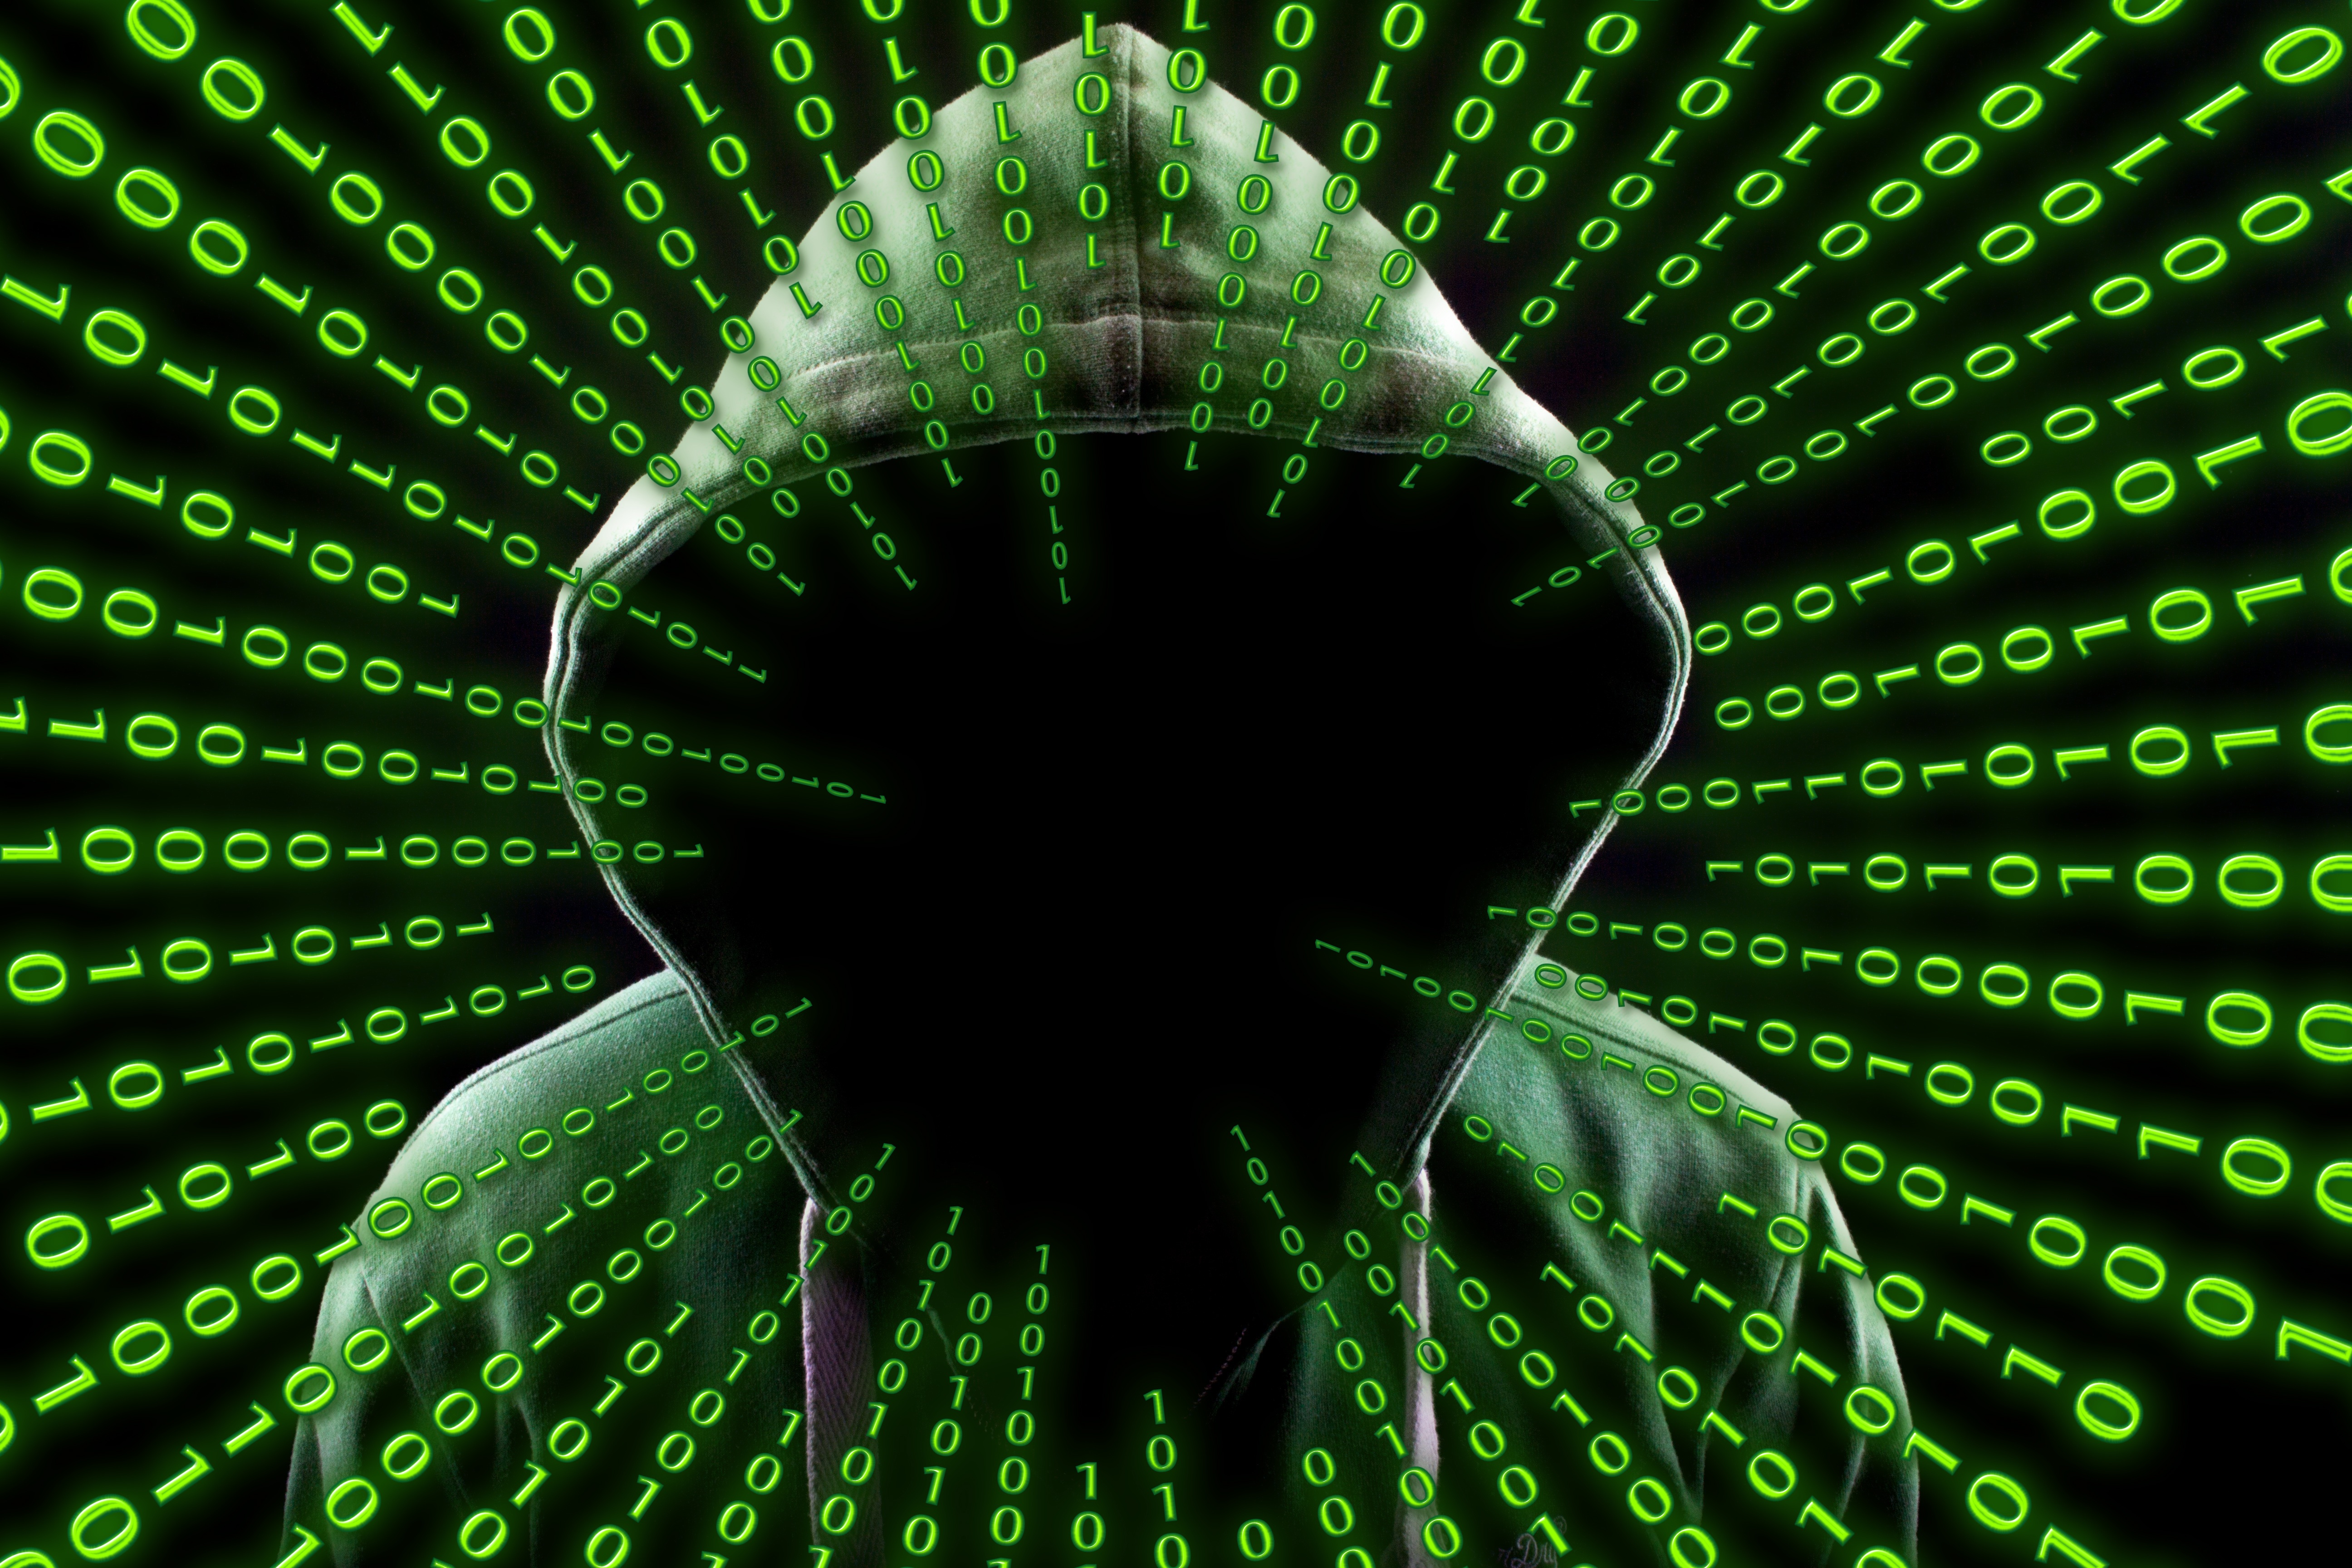 Hacker Attack Binary Code Hd Computer 4k Wallpapers Images